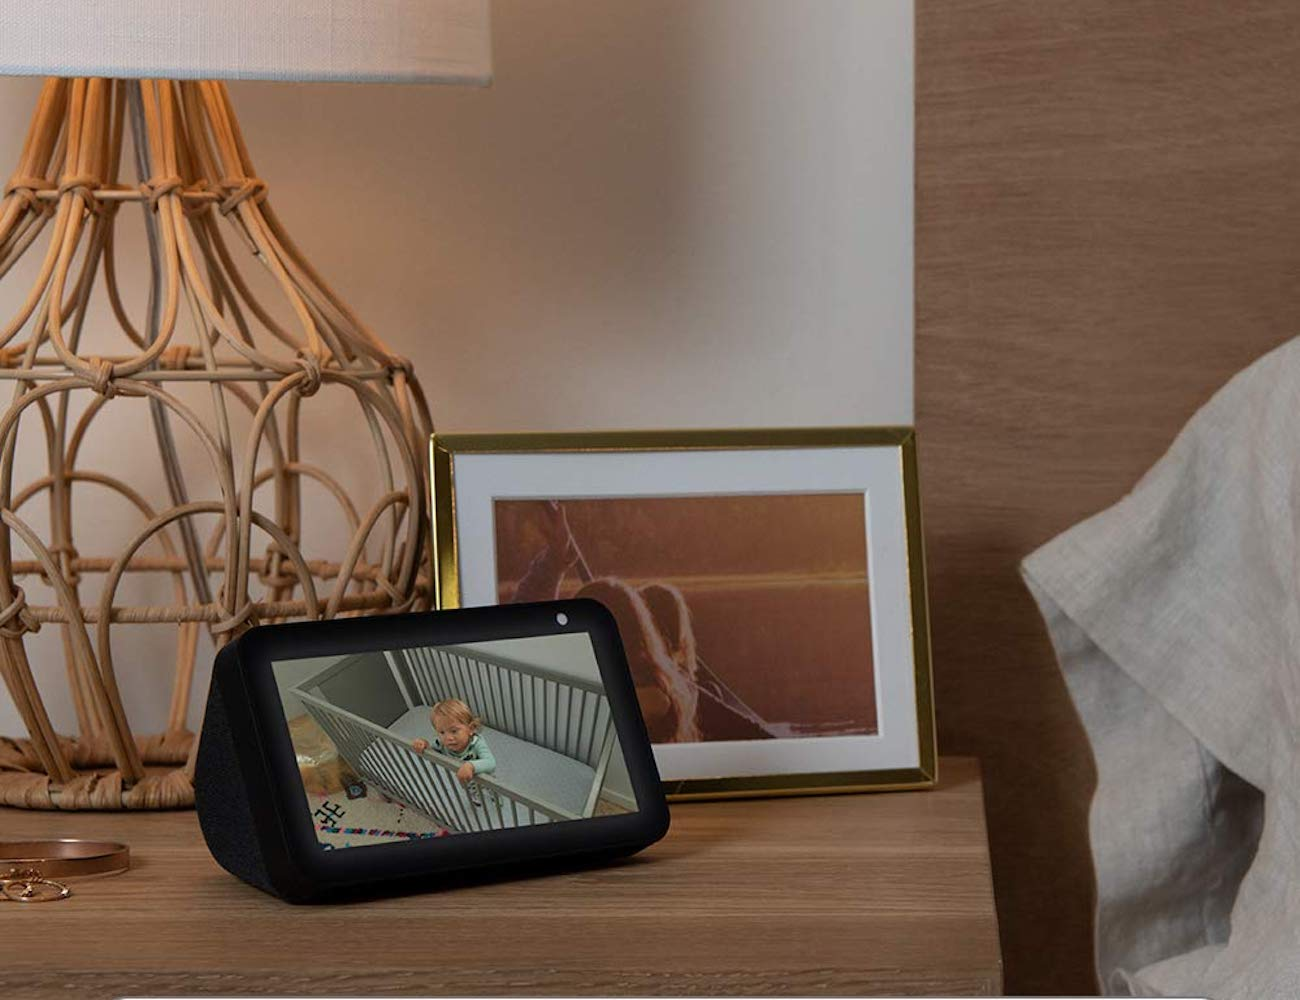 Amazon Echo Show 5 Alexa Enabled Smart Screen is the perfect nightstand assistant